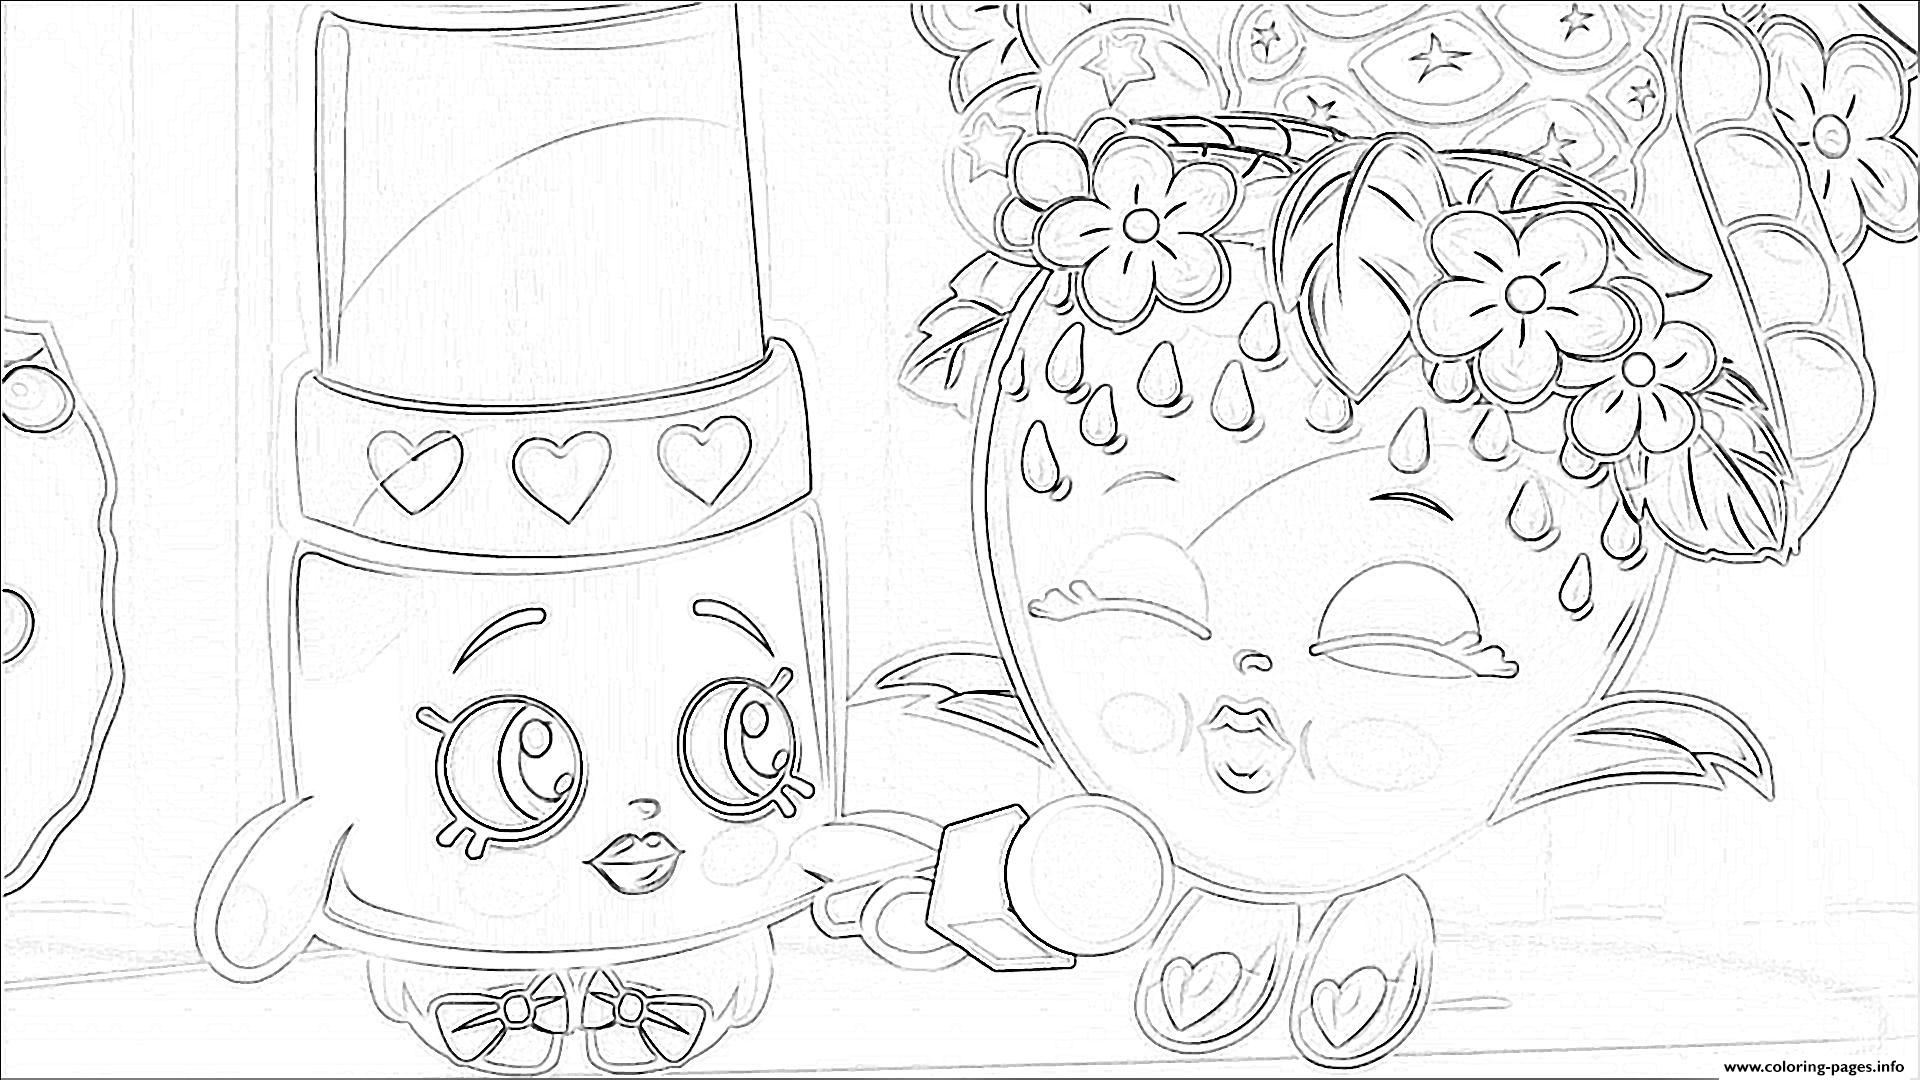 Shopkins Season 2 Episode 1 Coloring Pages Printable